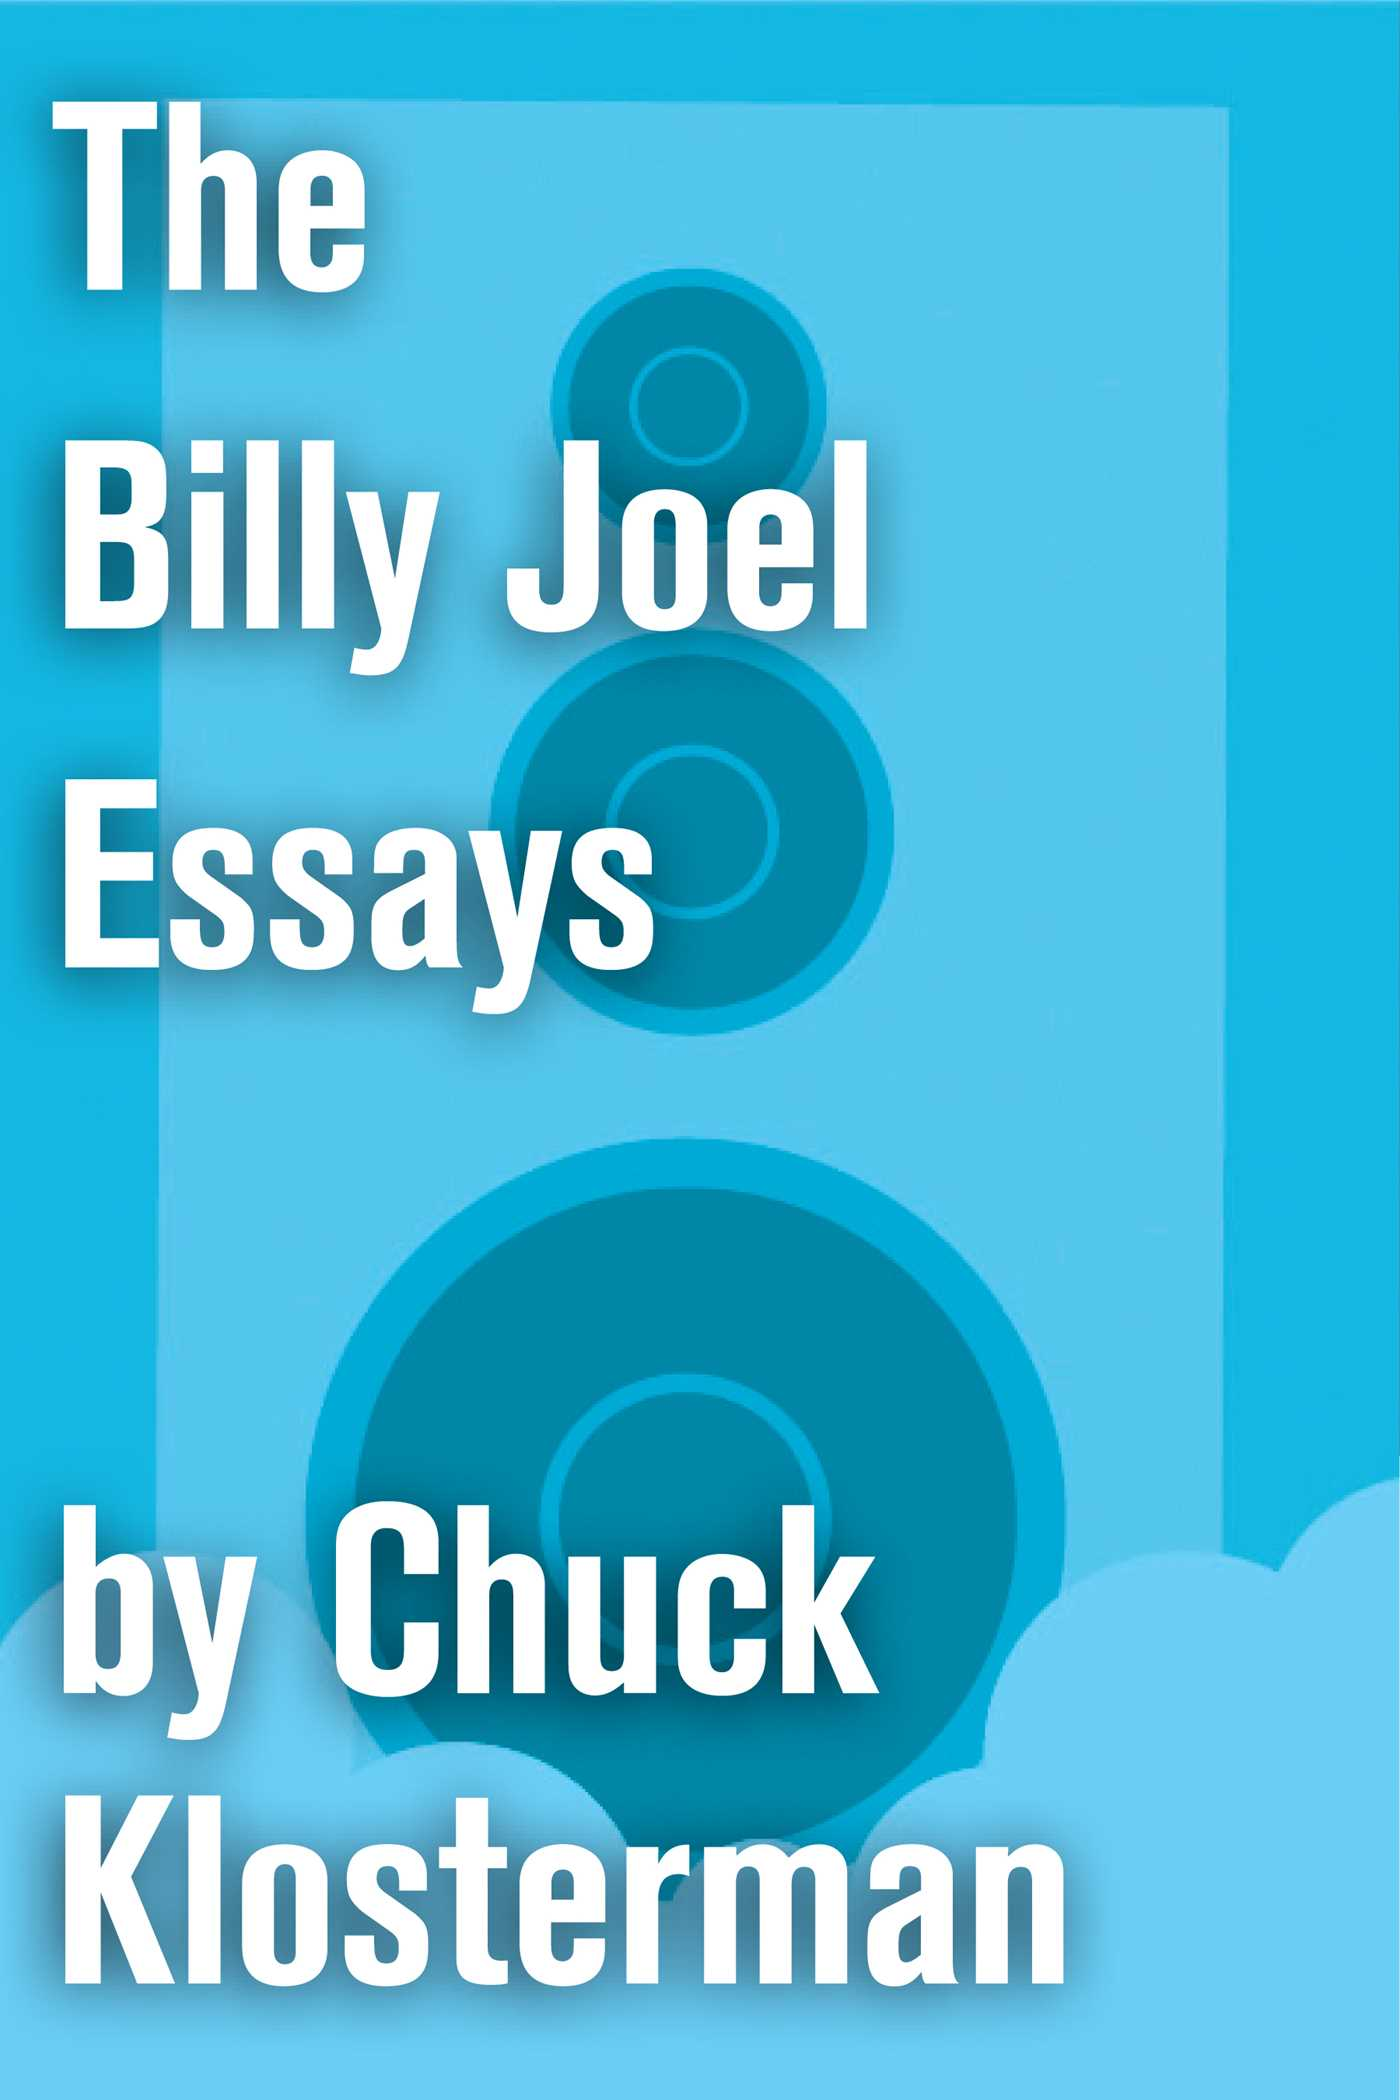 chuck klosterman best essay Download story ≋↺ eating the dinosaur chuck klosterman has chronicled rock music, film, and sports for almost fifteen years he's covered.